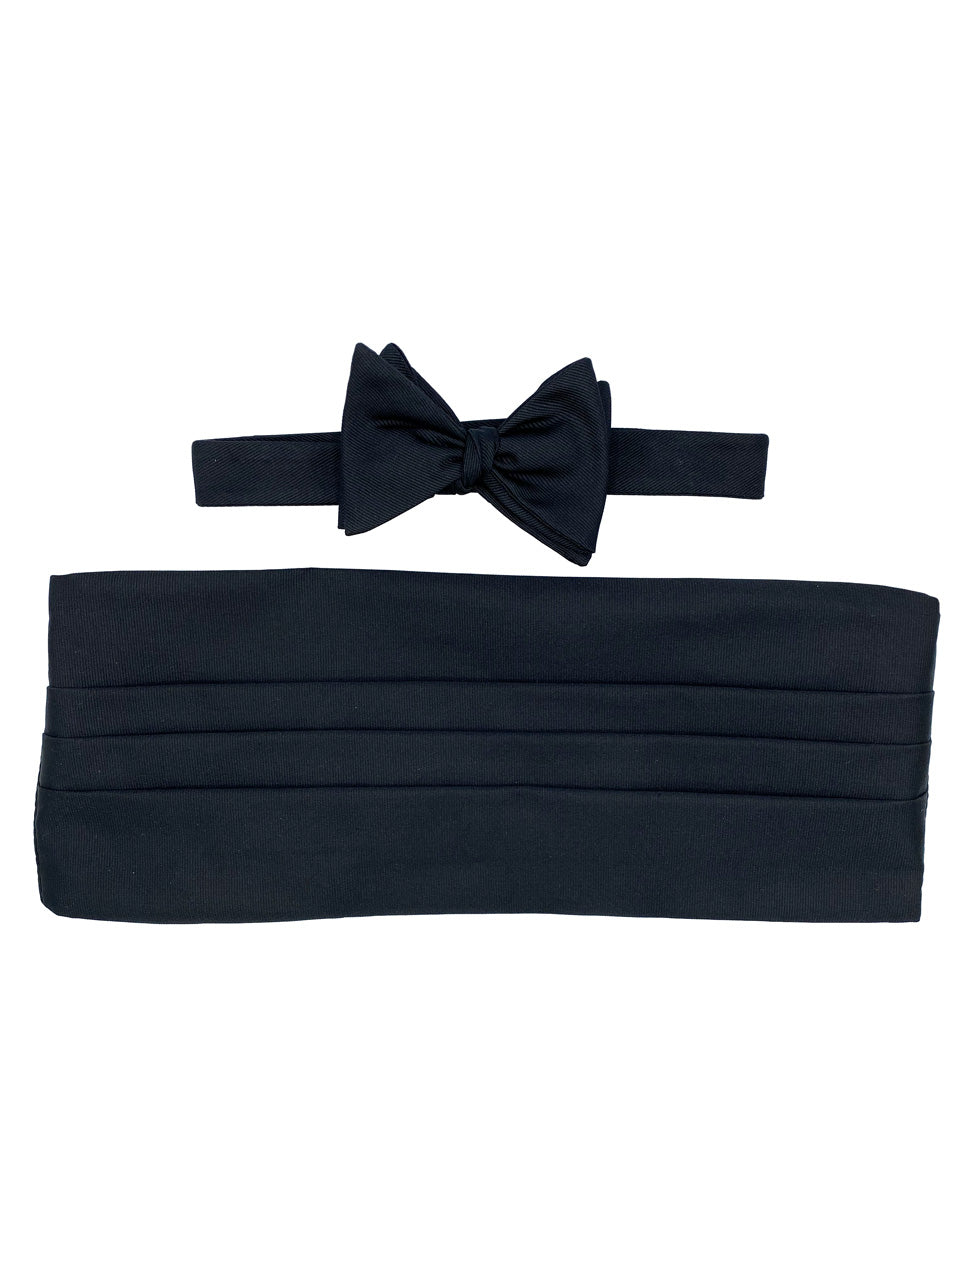 Black Grosgrain Bow Tie & Cummerbund Set